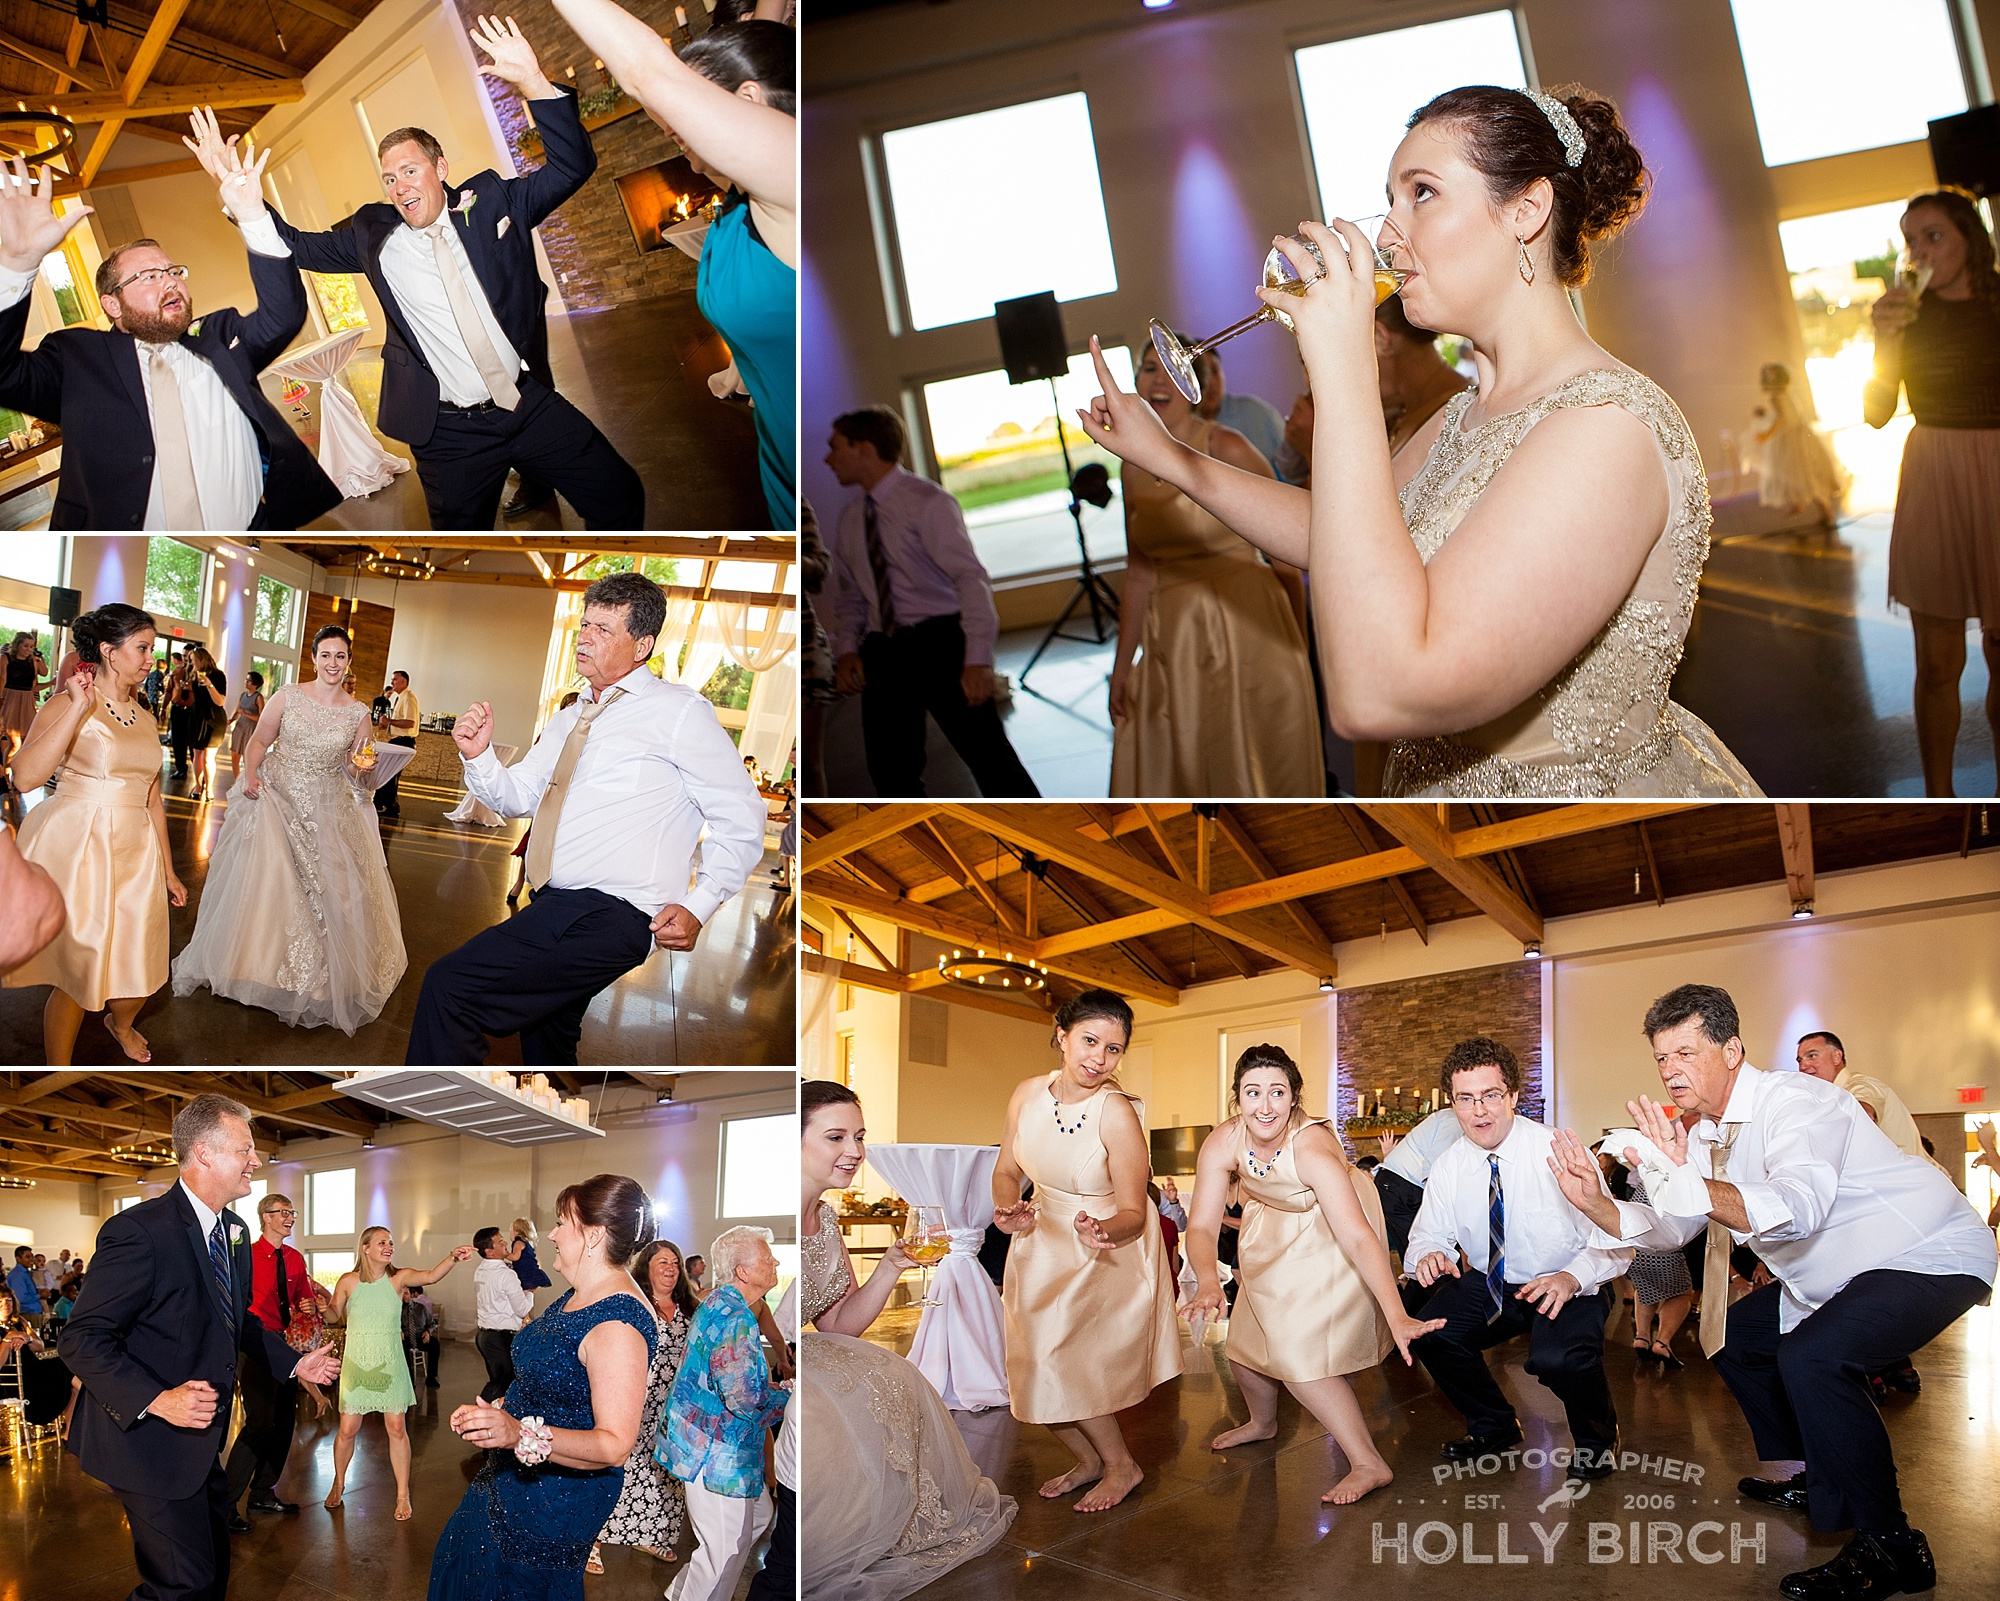 wedding dancing candid photos